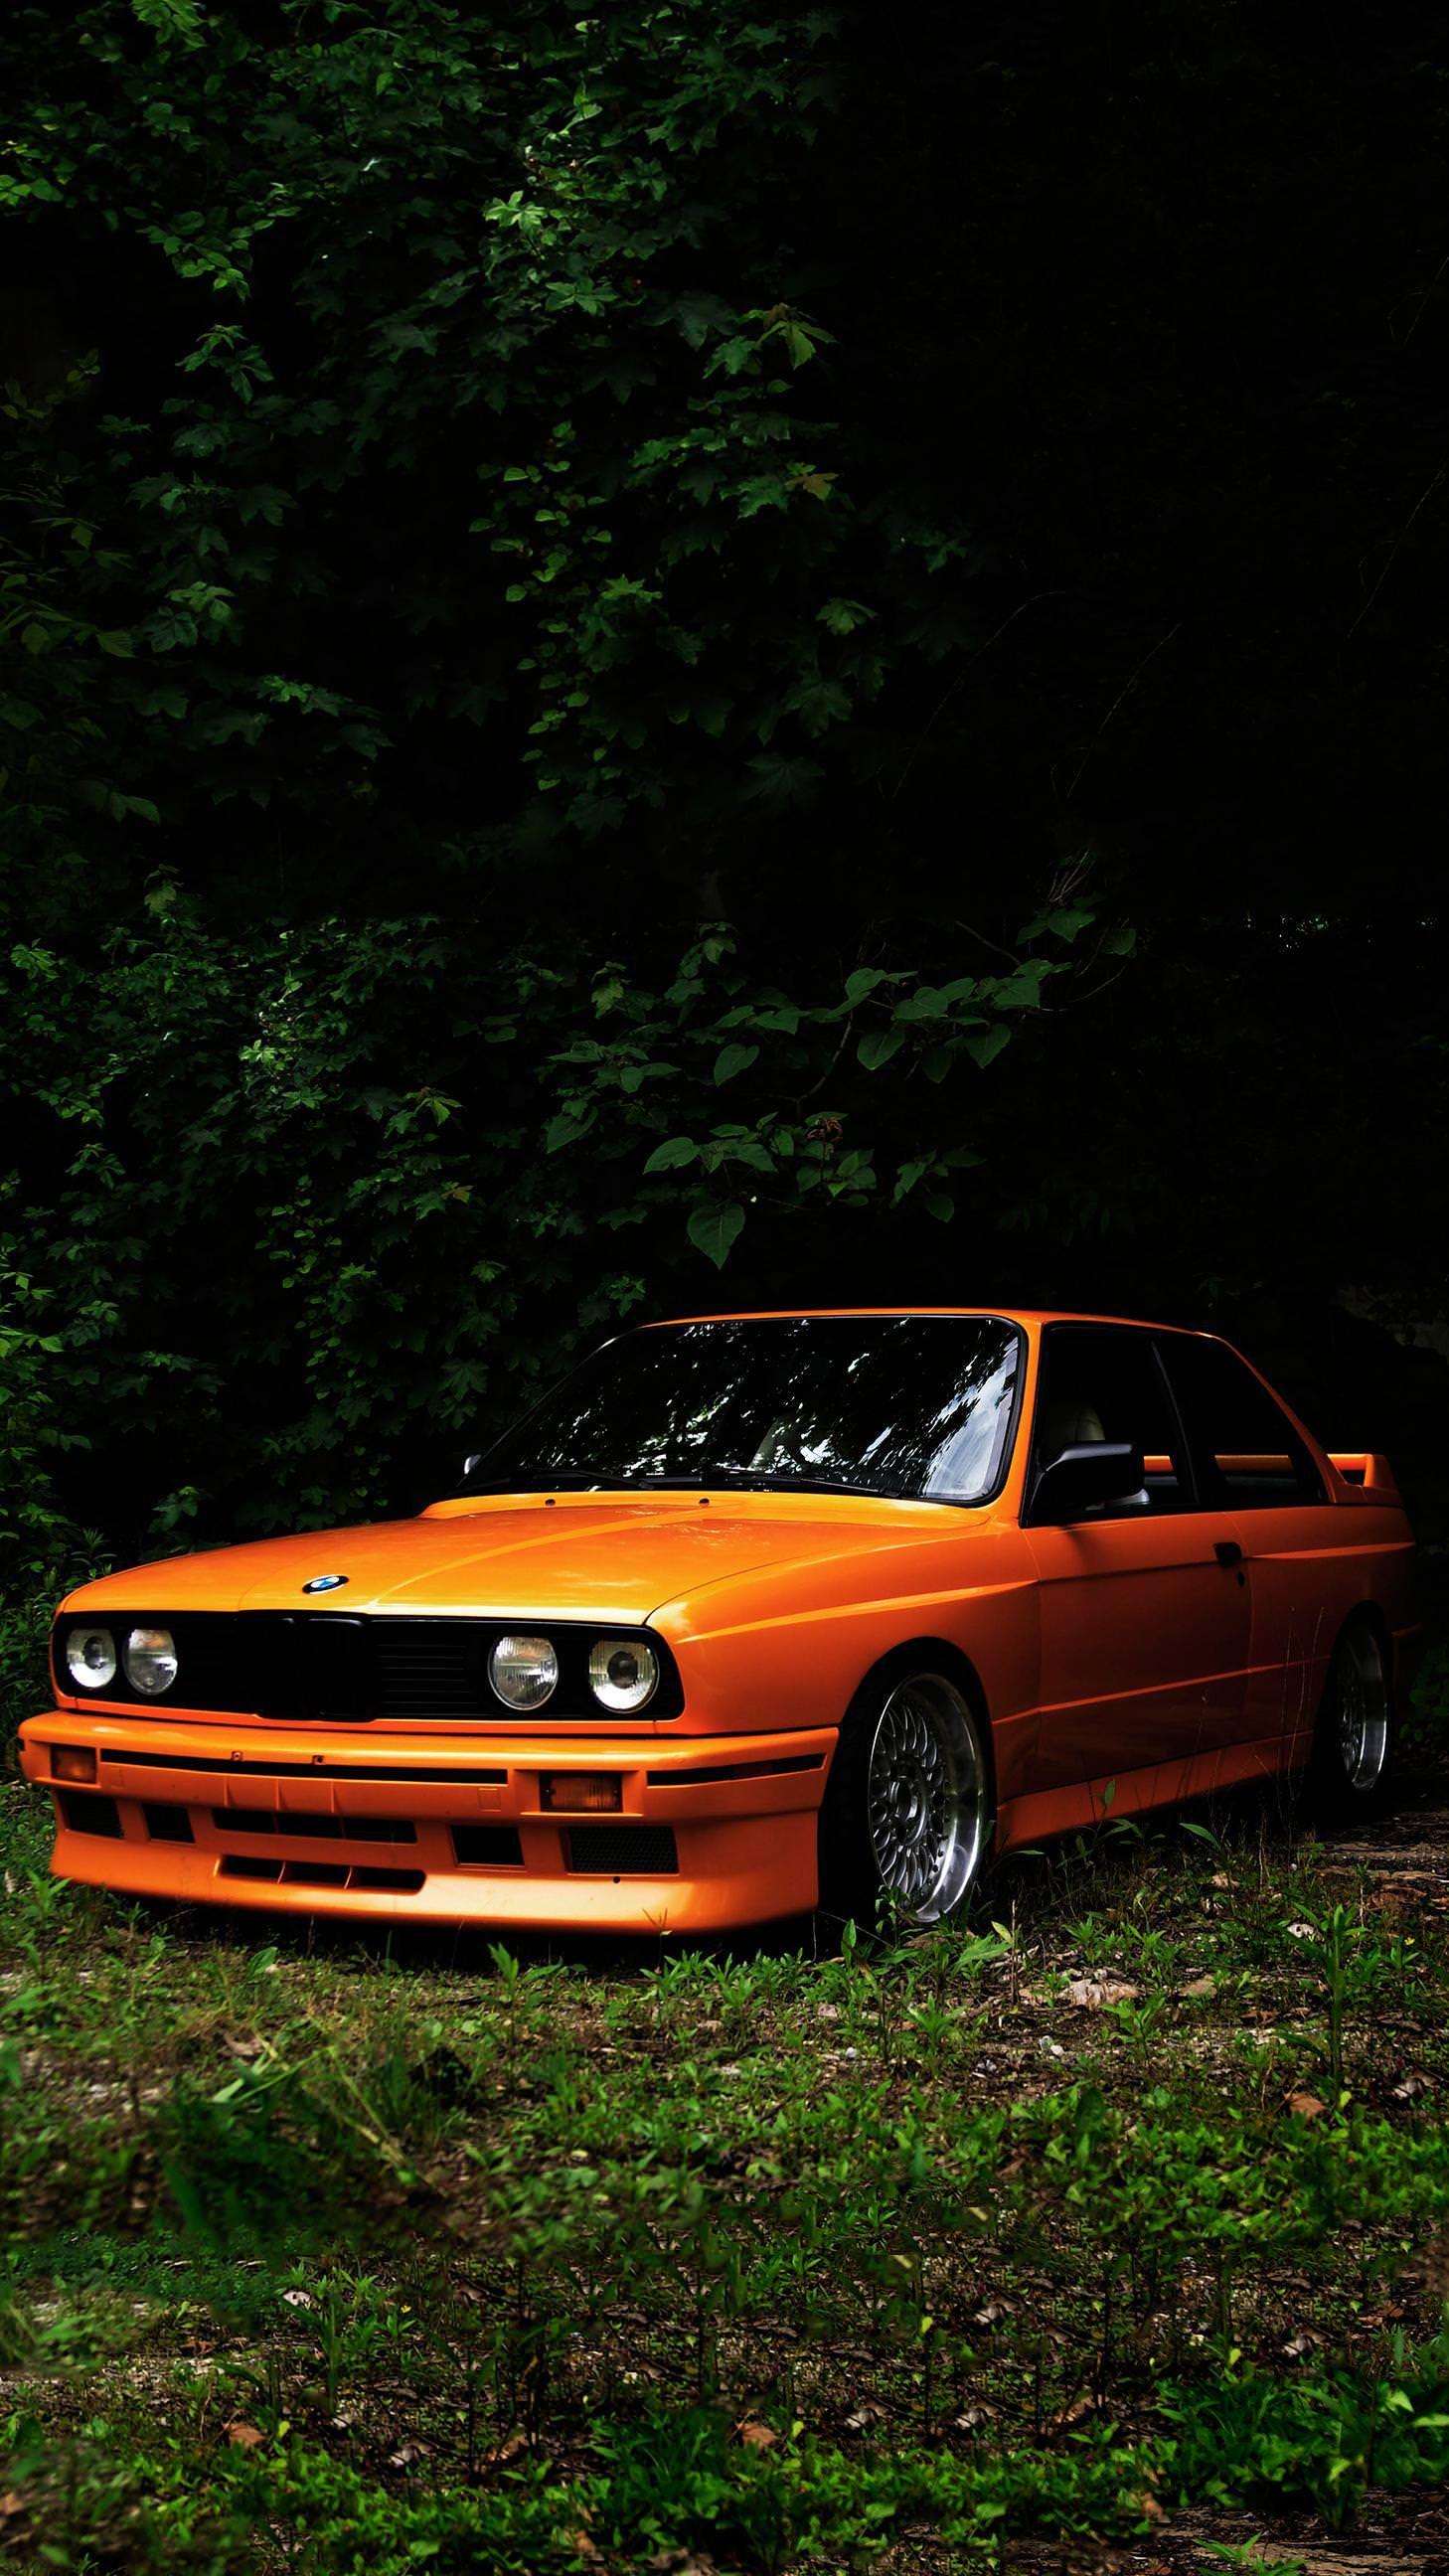 High Res 1458 X 2592 Nostalgia Ultra Phone Wallpapers X Post From R Frankocean Download At Htt Frank Ocean Wallpaper Ocean Wallpaper Street Racing Cars